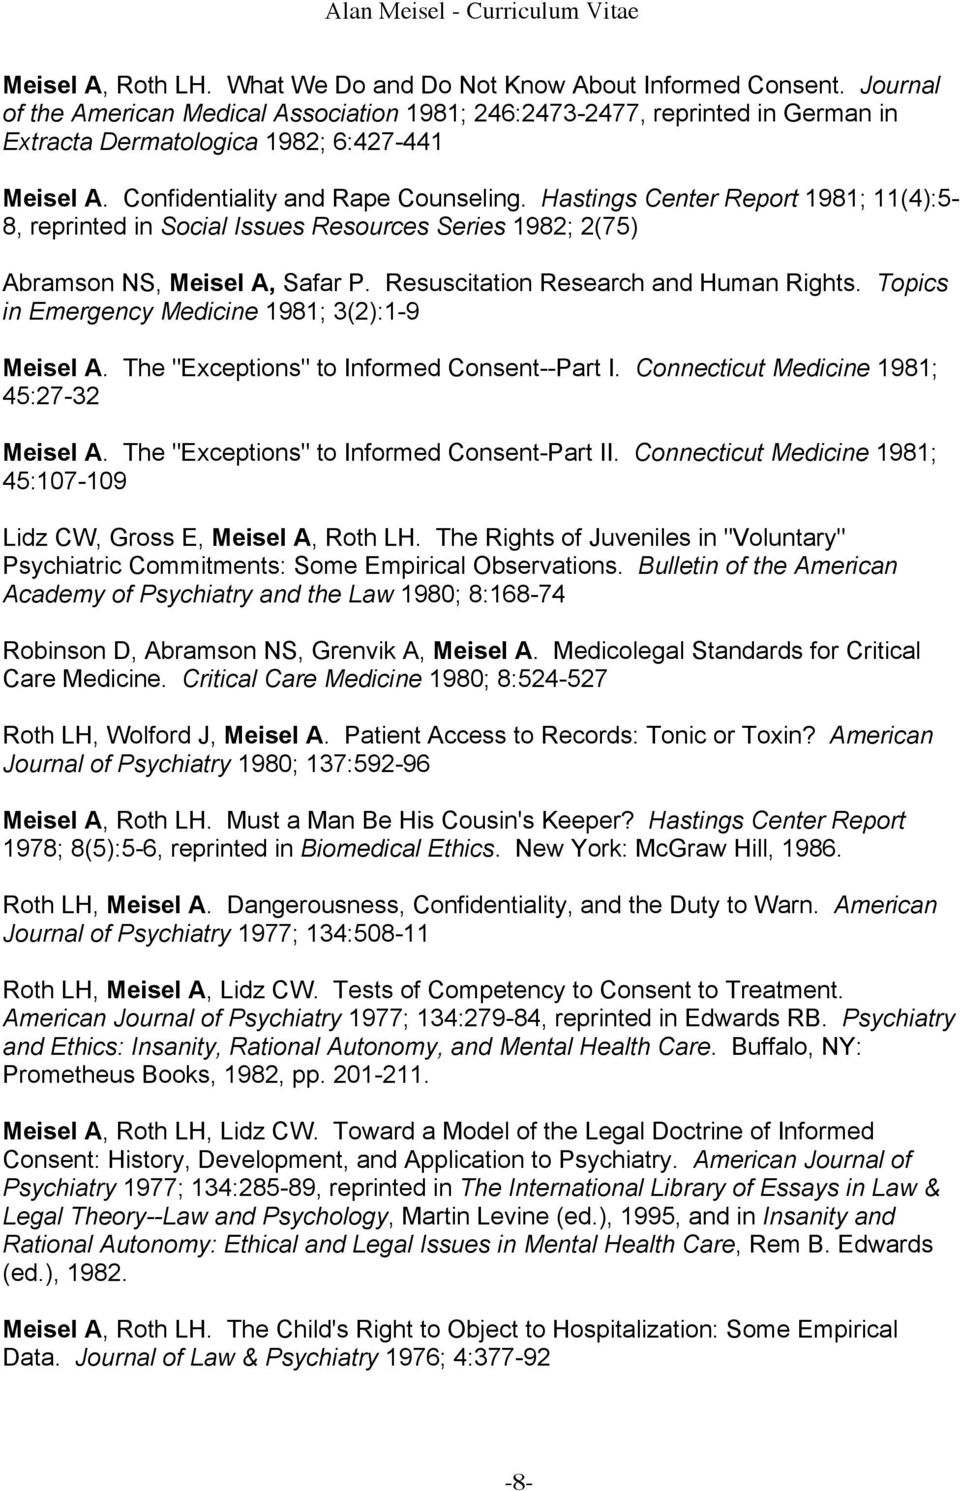 Hastings Center Report 1981; 11(4):5-8, reprinted in Social Issues Resources Series 1982; 2(75) Abramson NS, Meisel A, Safar P. Resuscitation Research and Human Rights.